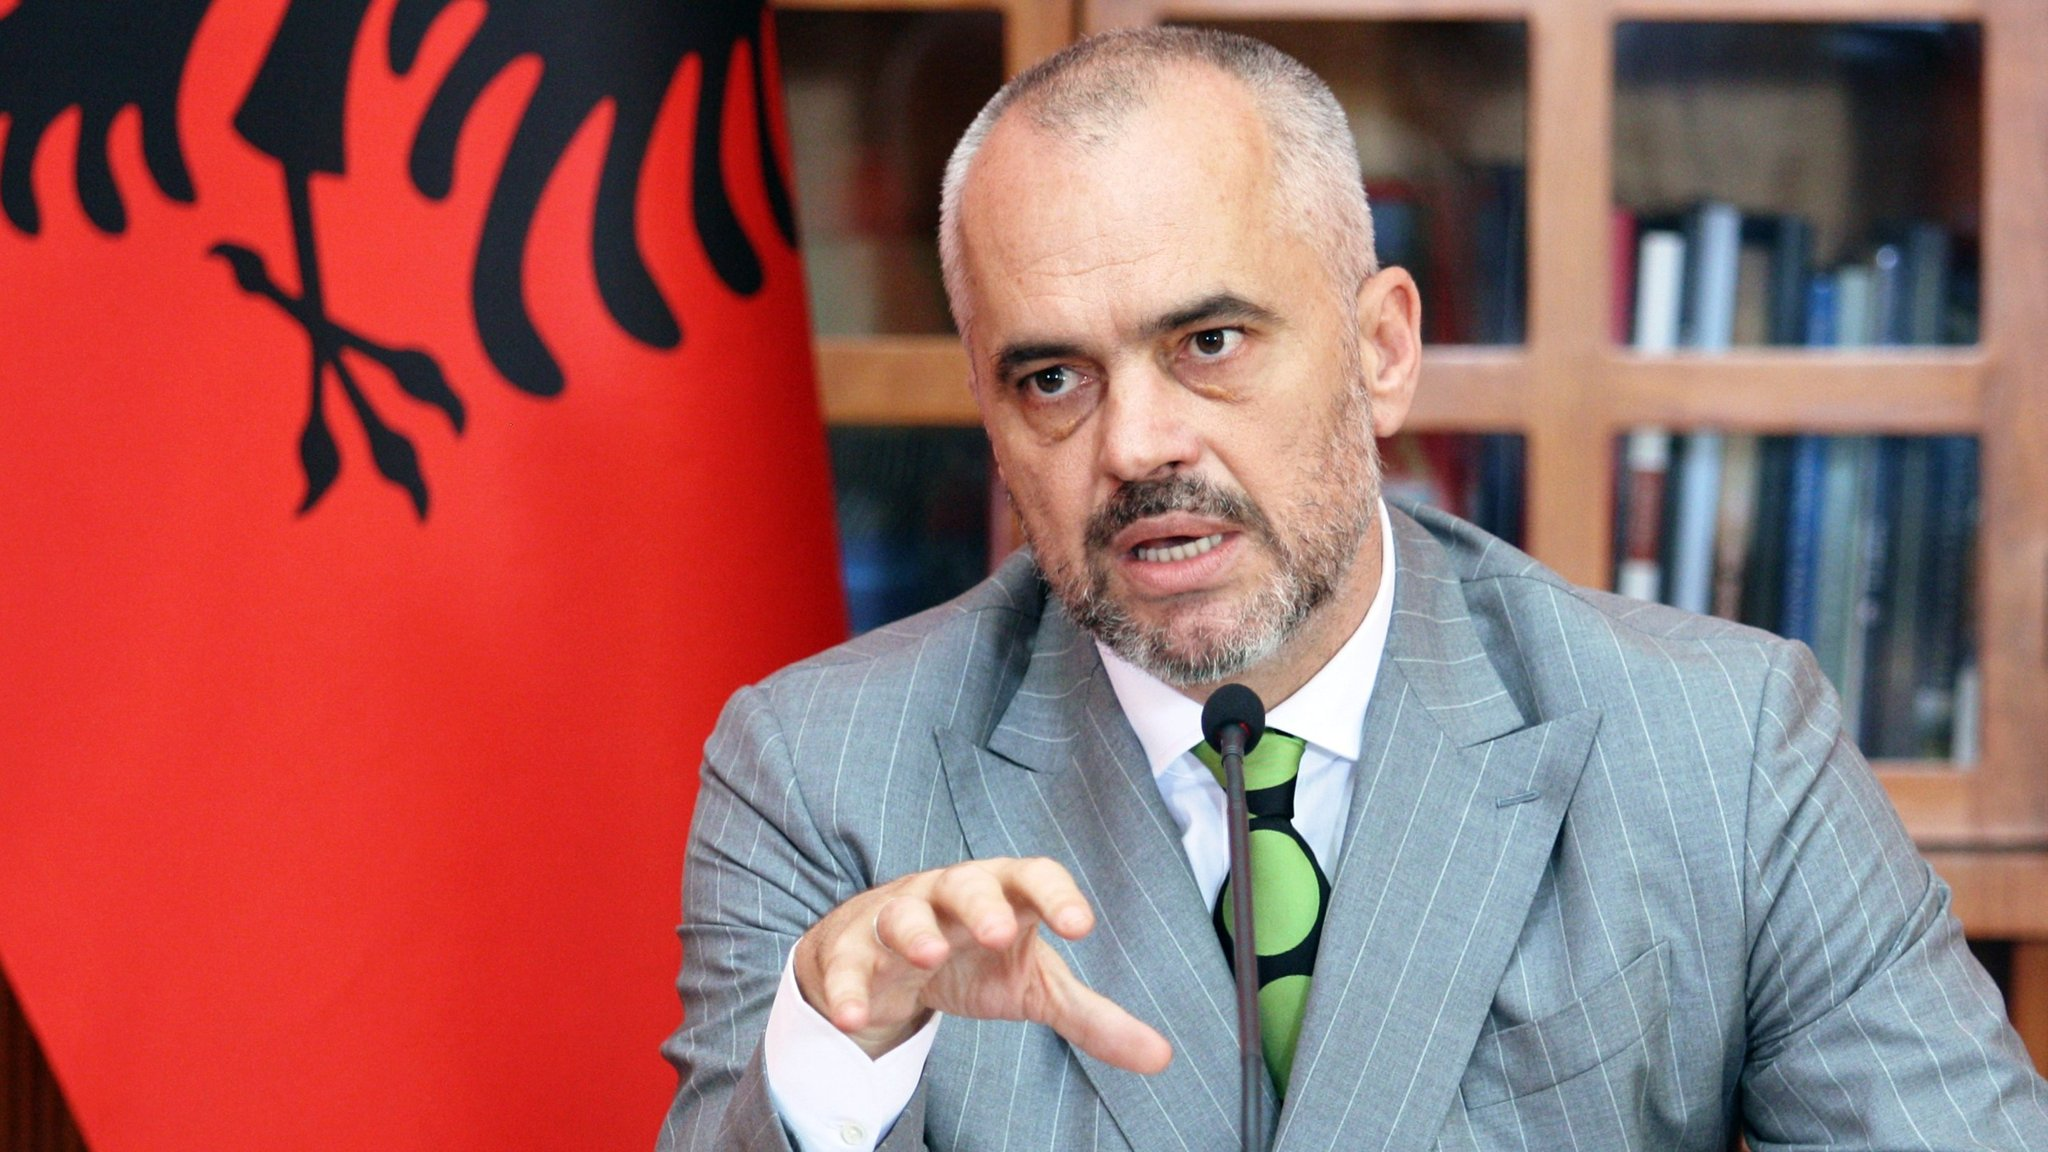 Albania's Rama accuses opposition of launching a campaign of misinformation